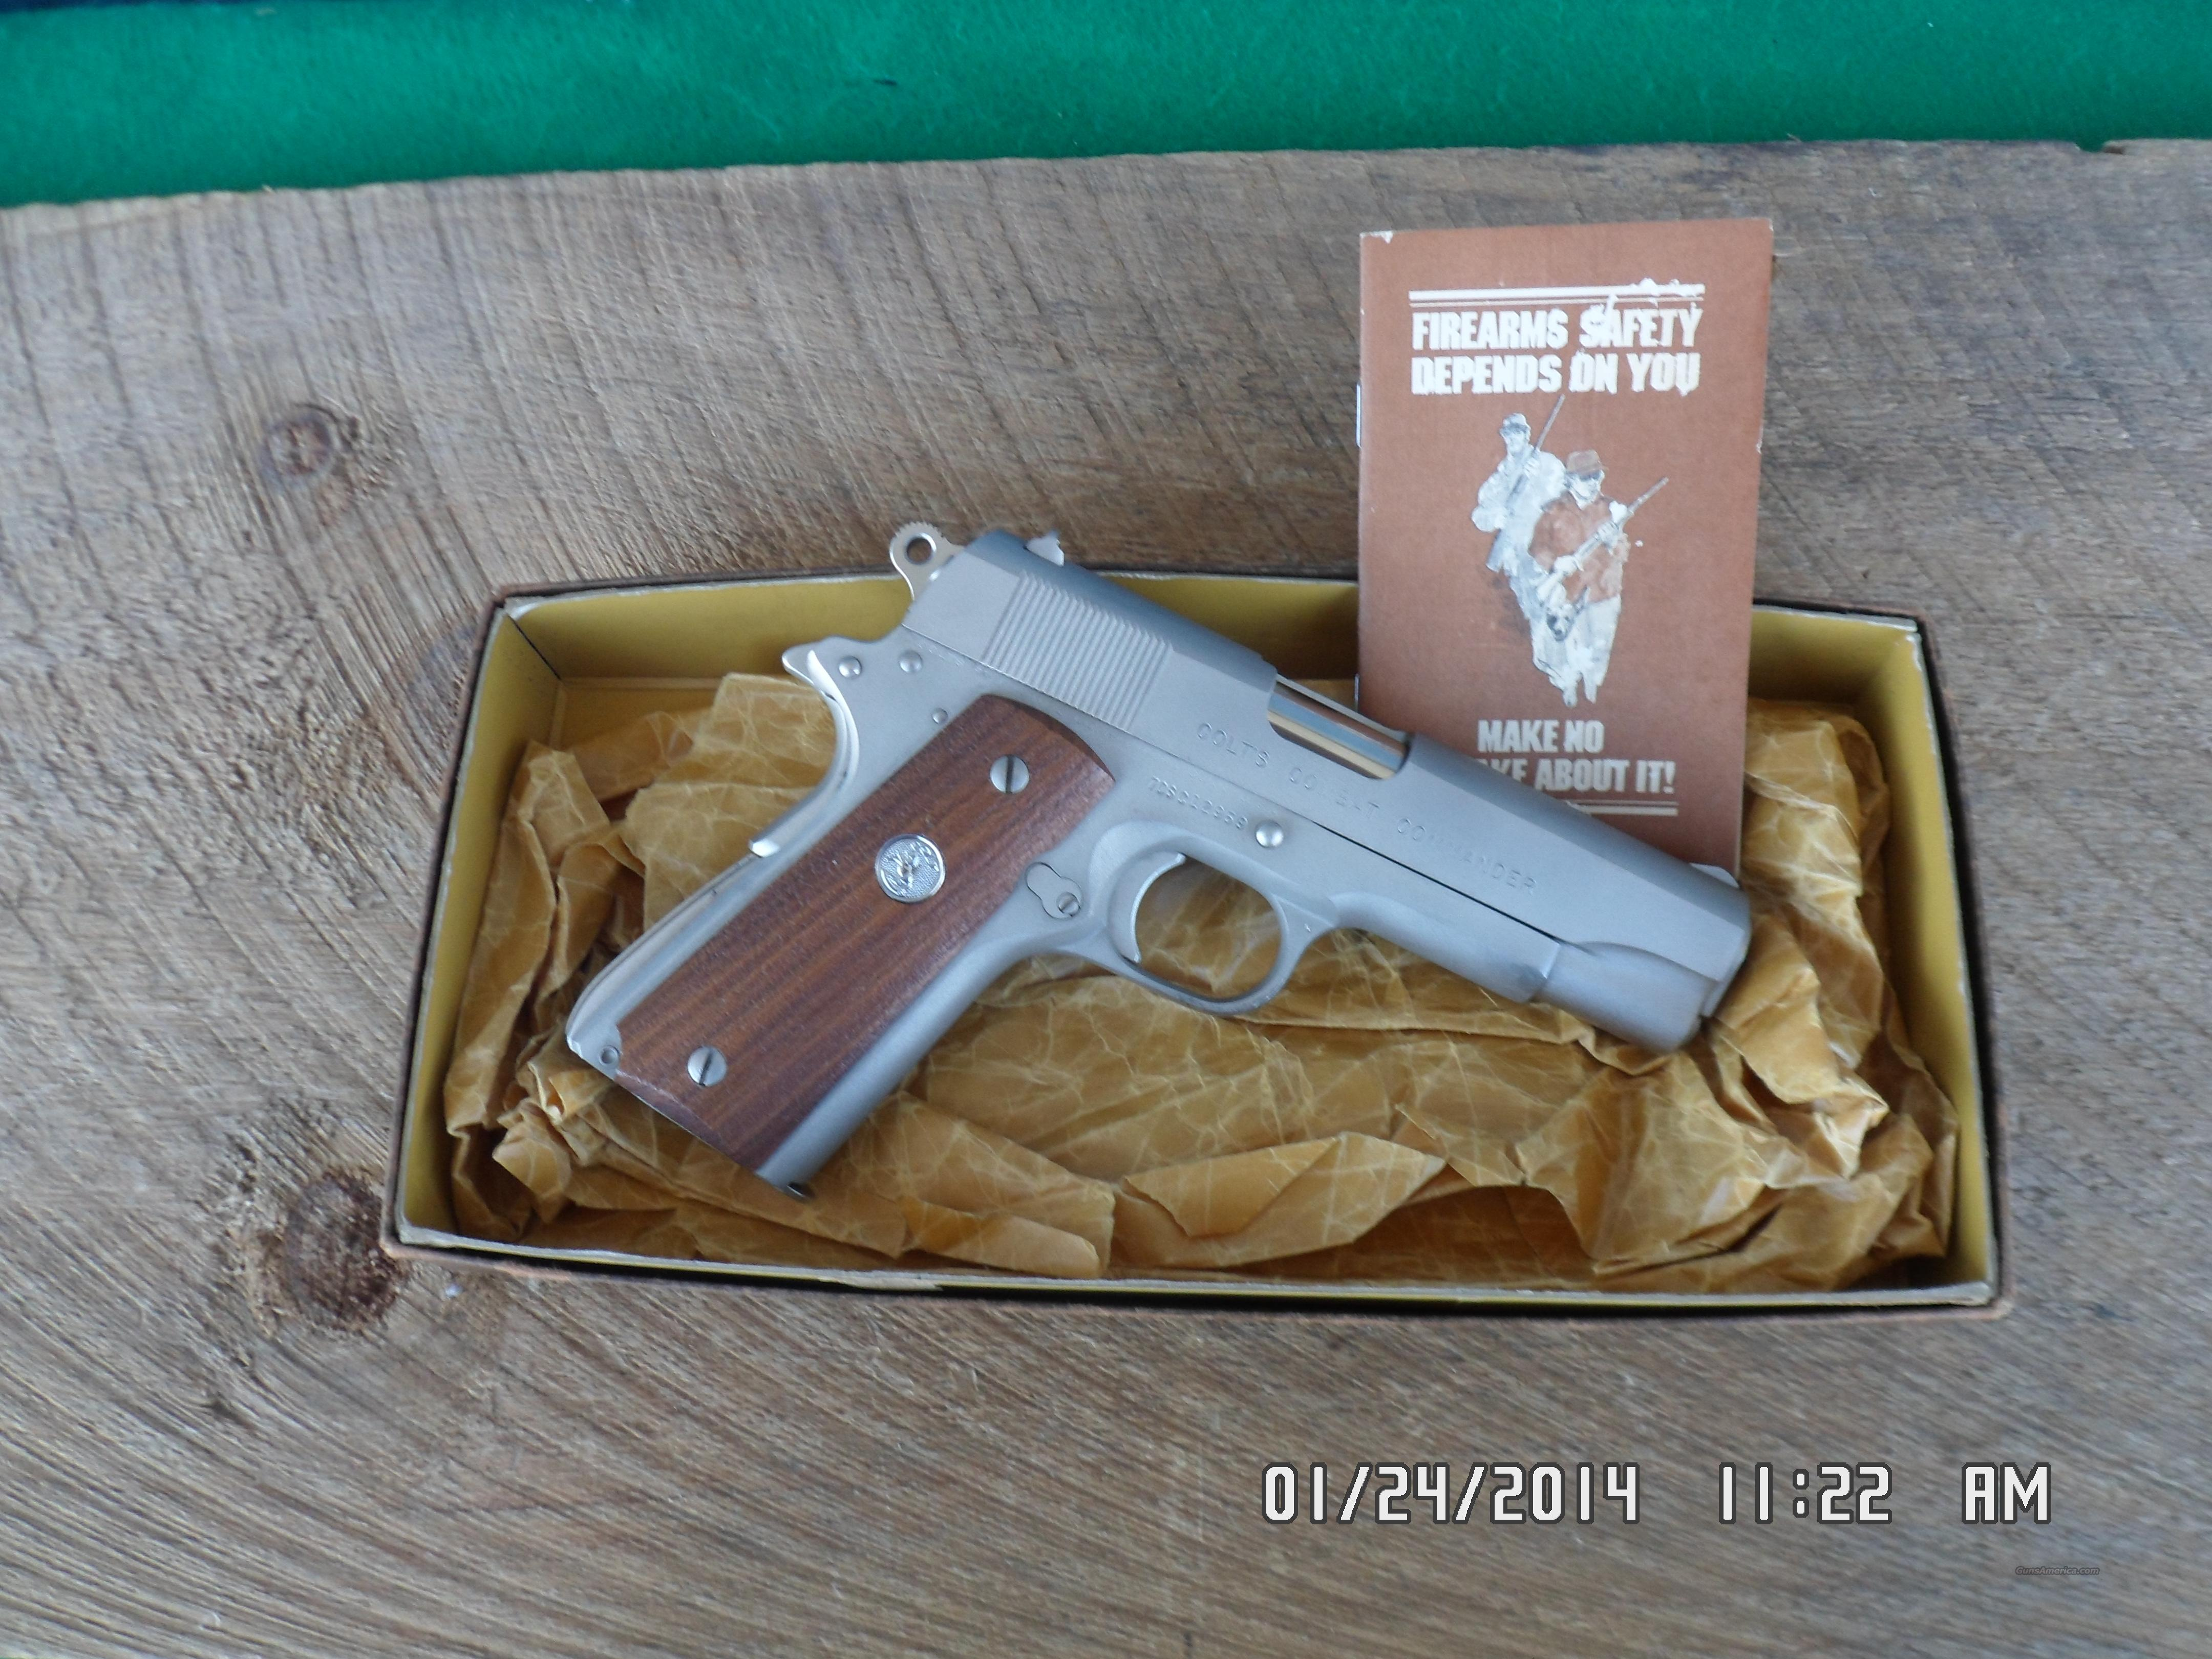 COLT 1911 COMBAT COMMANDER 45ACP CAL 70 SERIES, FACTORY SATIN BRUSH NICKEL FINISH 99% WITH PERIOD COLT BOX. LOOKS UNFIRED  Guns > Pistols > Colt Automatic Pistols (1911 & Var)